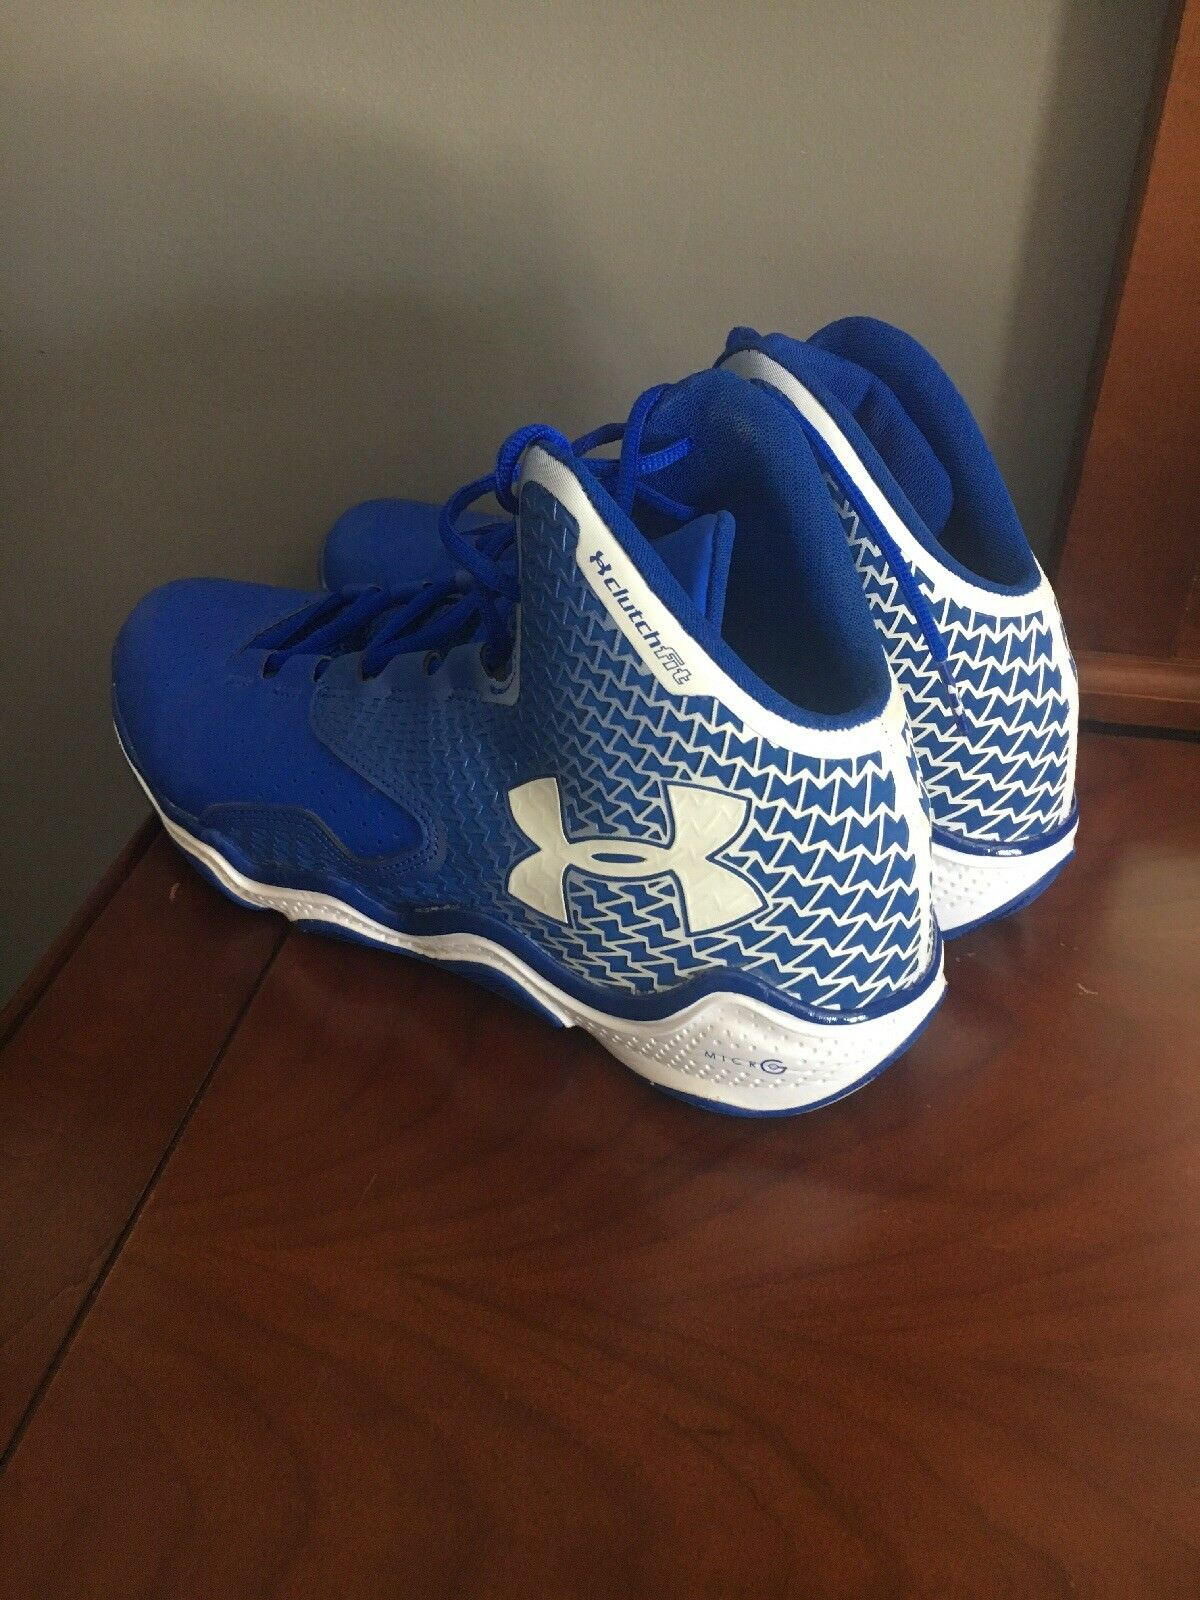 Under Armour Basketball Clutch Fit Shoes Men's Size 12